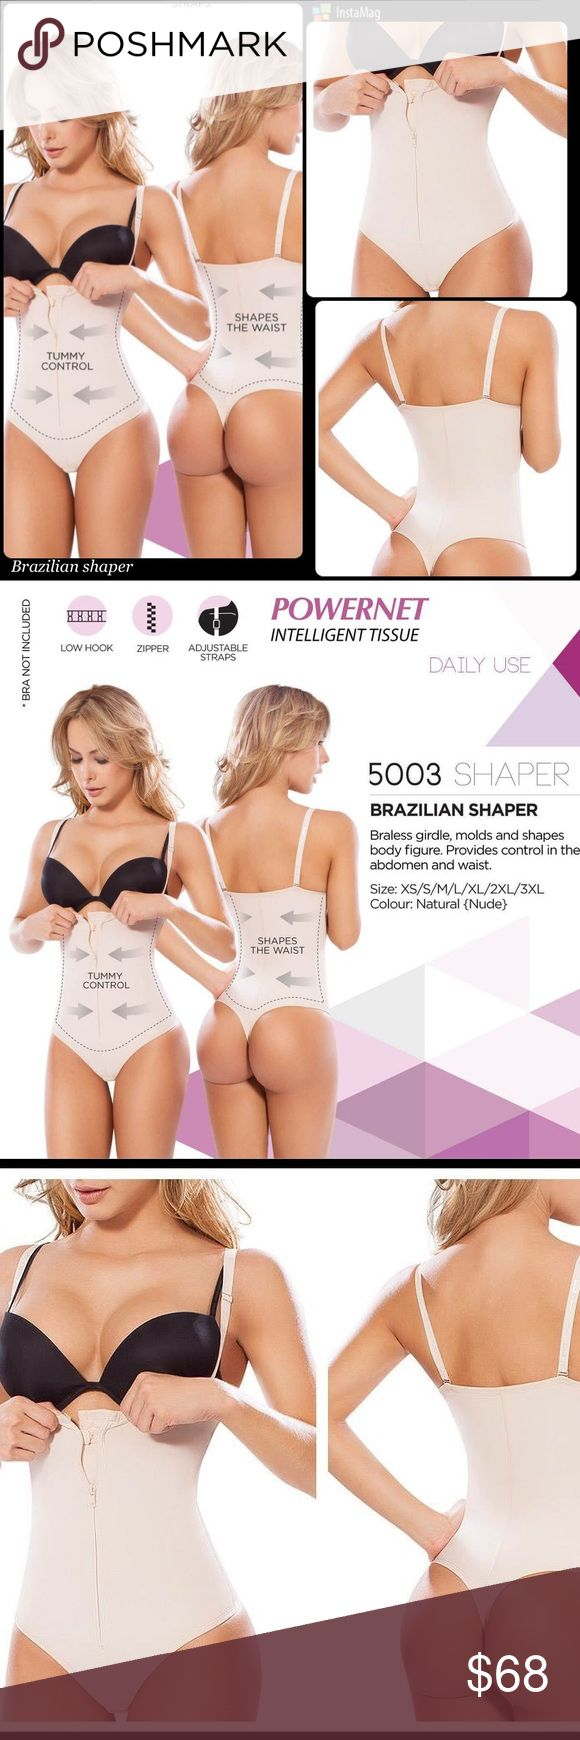 Brazilian Faja shaper control Faja Colombiana that molds and shapes body figure, provide maximum control in the abdomen and ️waist. ️bra is not included Intimates & Sleepwear Shapewear